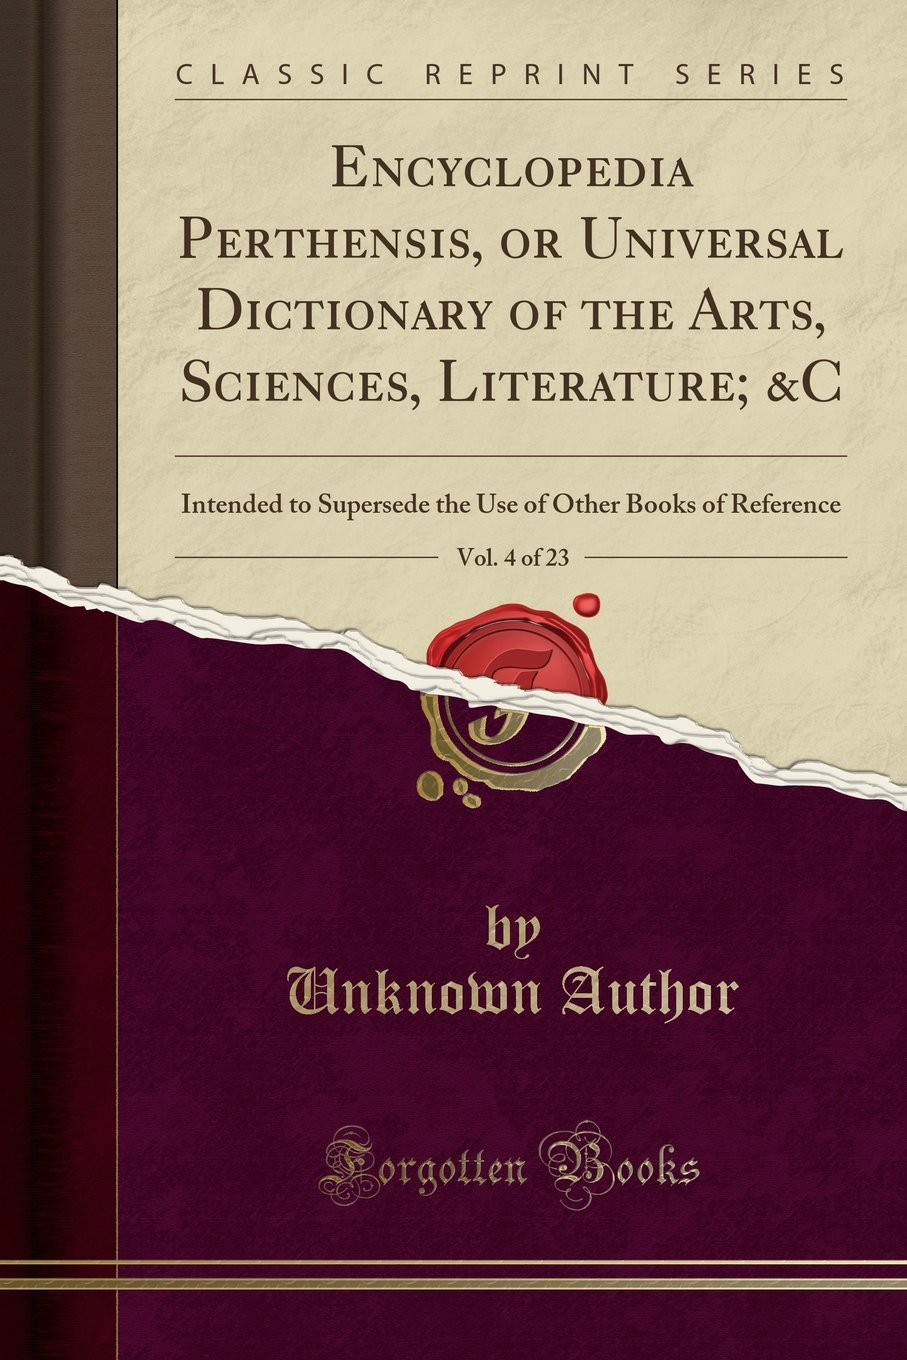 Download Encyclopedia Perthensis, or Universal Dictionary of the Arts, Sciences, Literature; &C, Vol. 4 of 23: Intended to Supersede the Use of Other Books of Reference (Classic Reprint) PDF